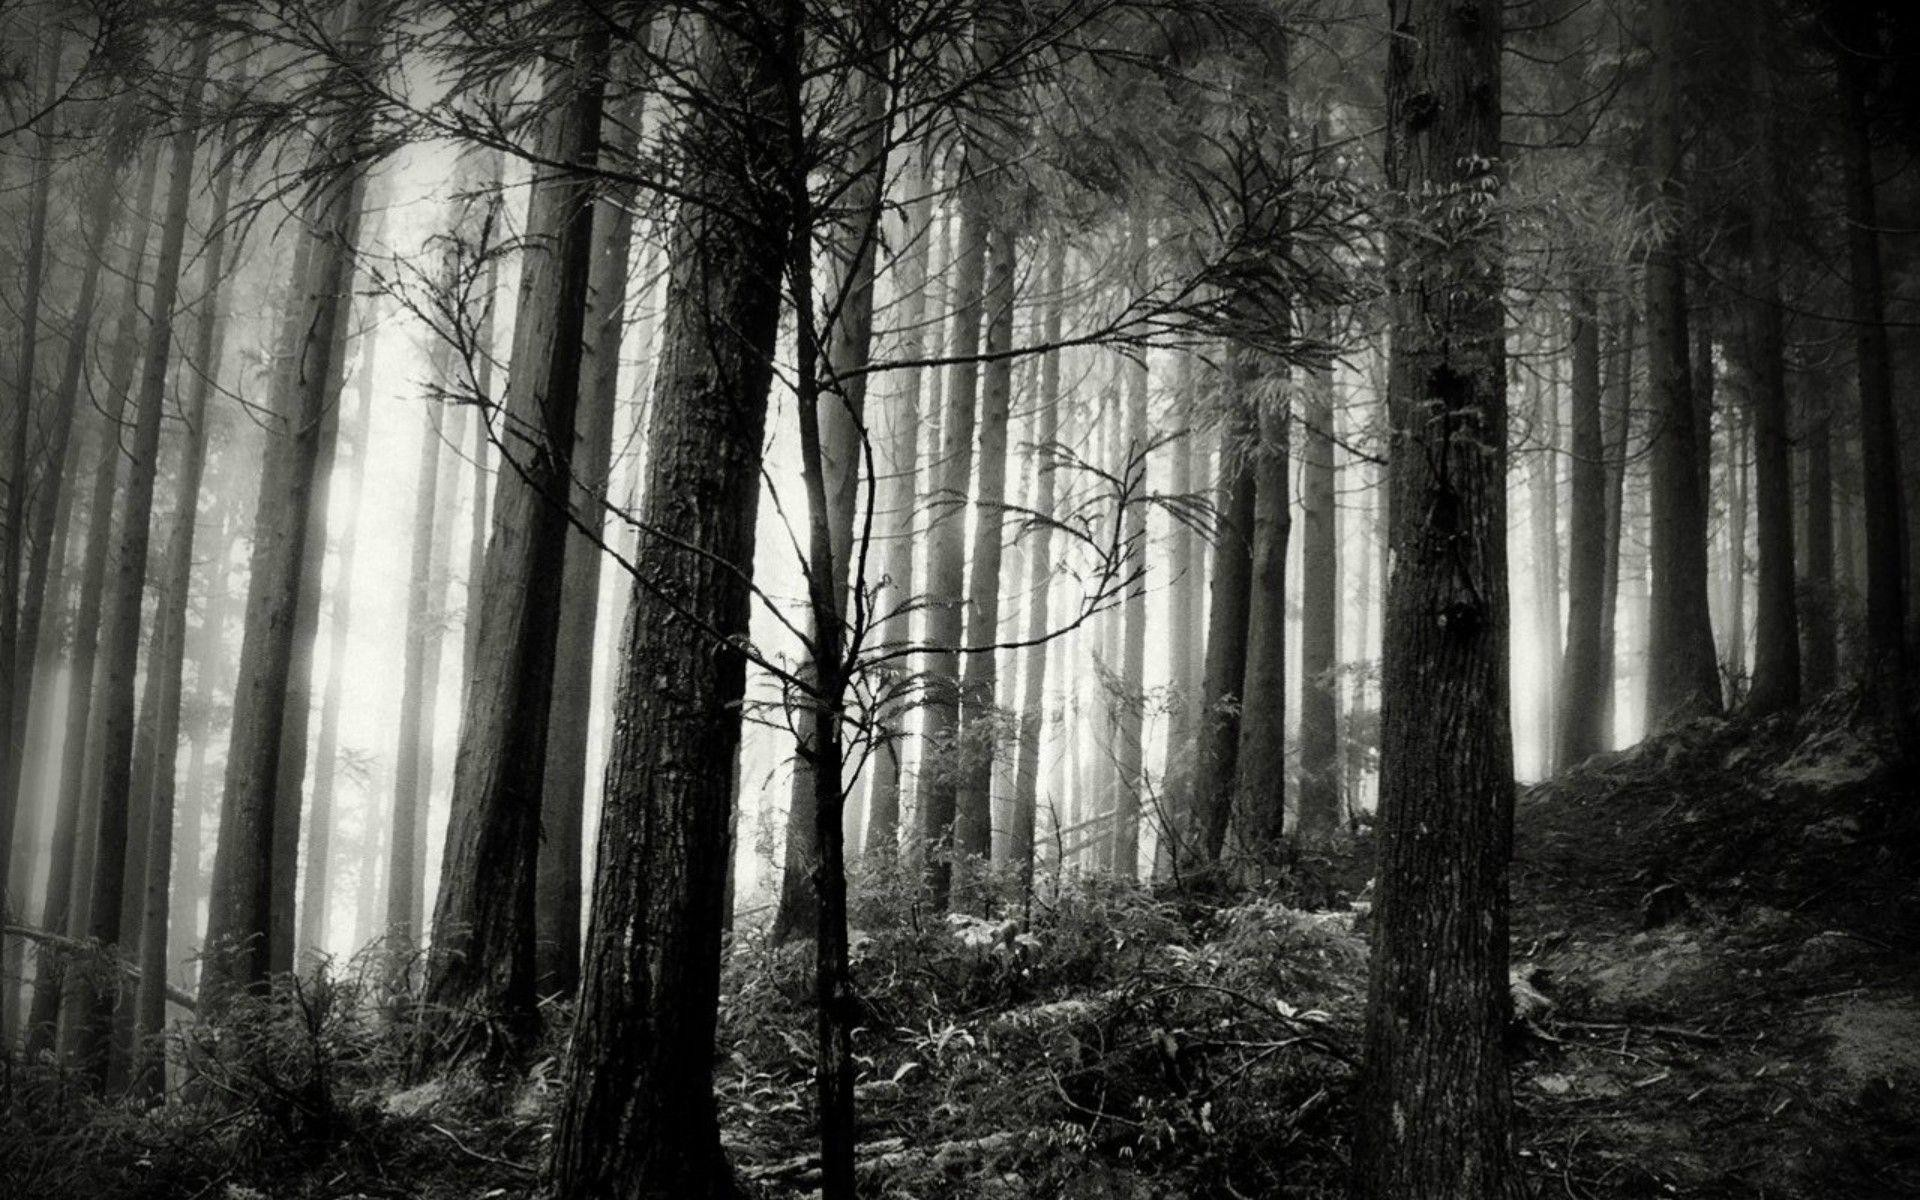 Black And White Forest Images Wallpaper | Green HD Wallpaper